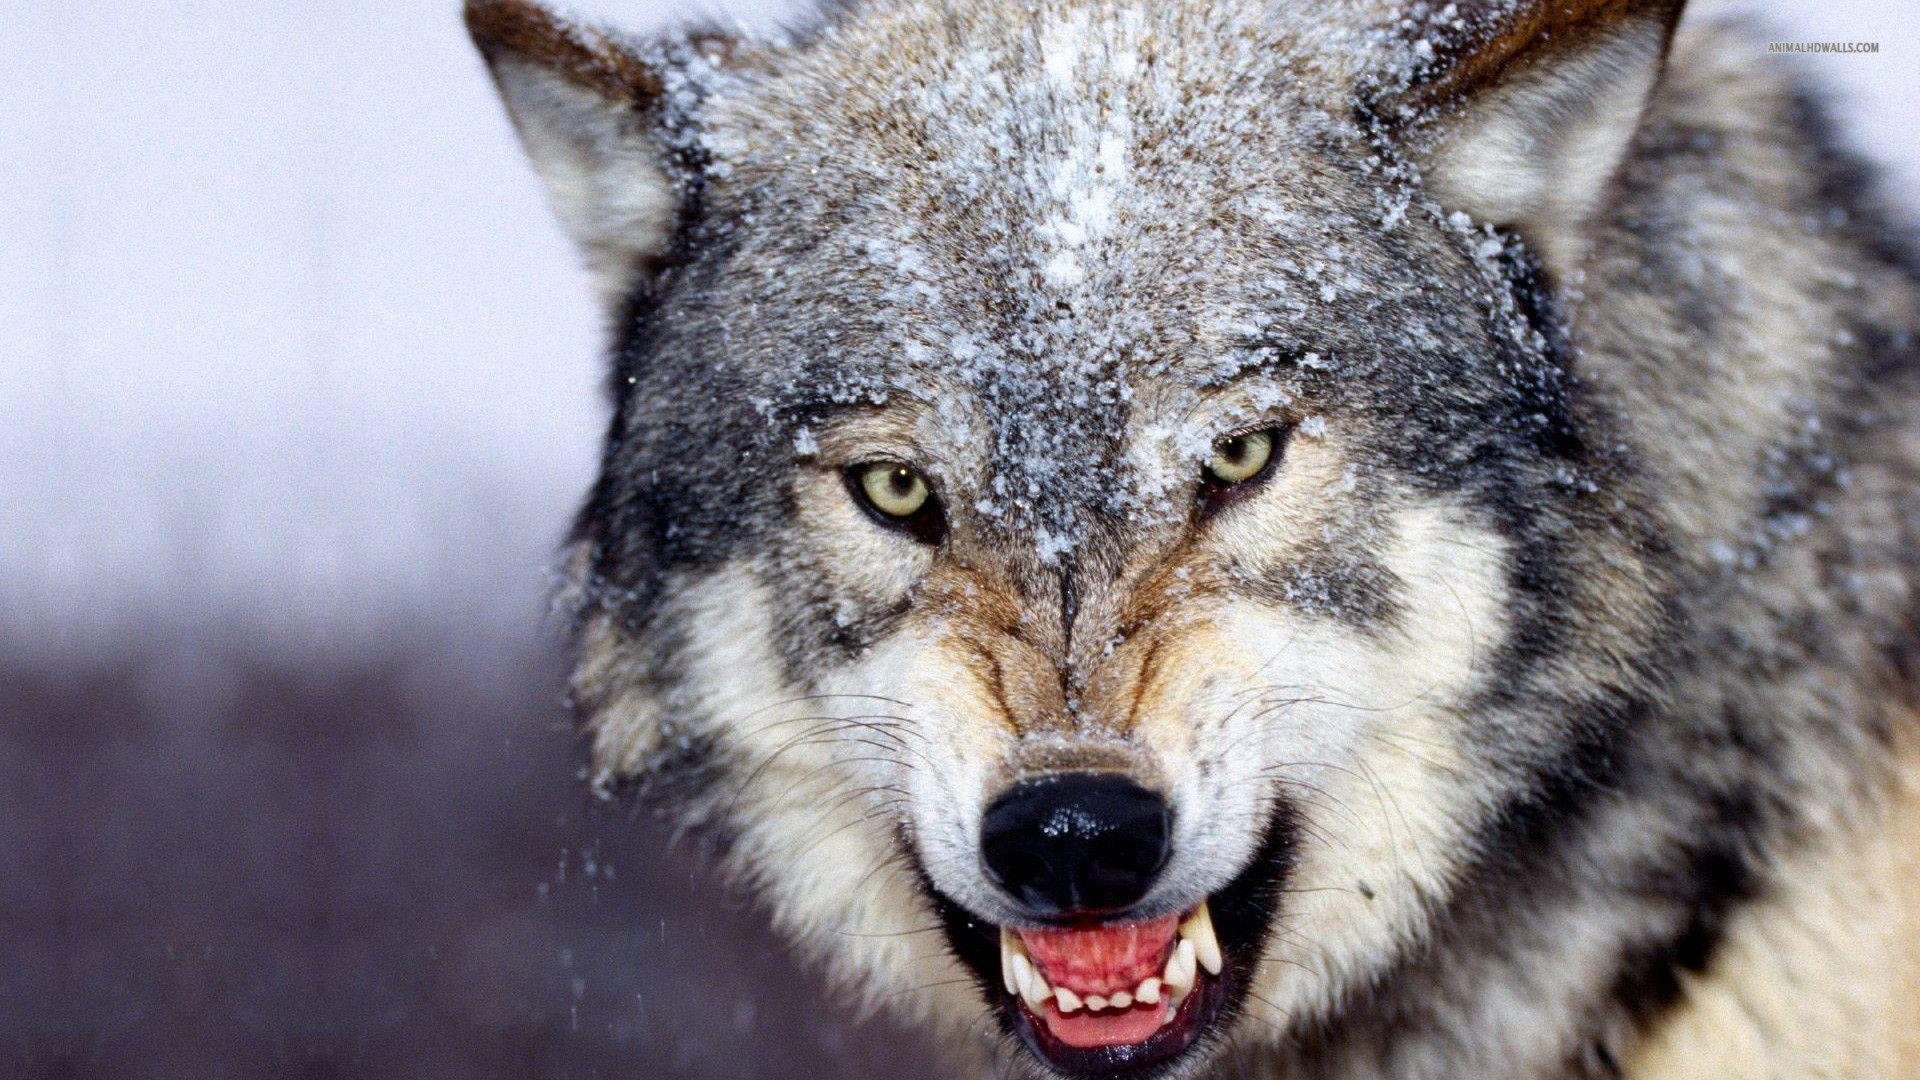 Teen Wakes Up To Wolf Eating His Head | Unofficial Networks